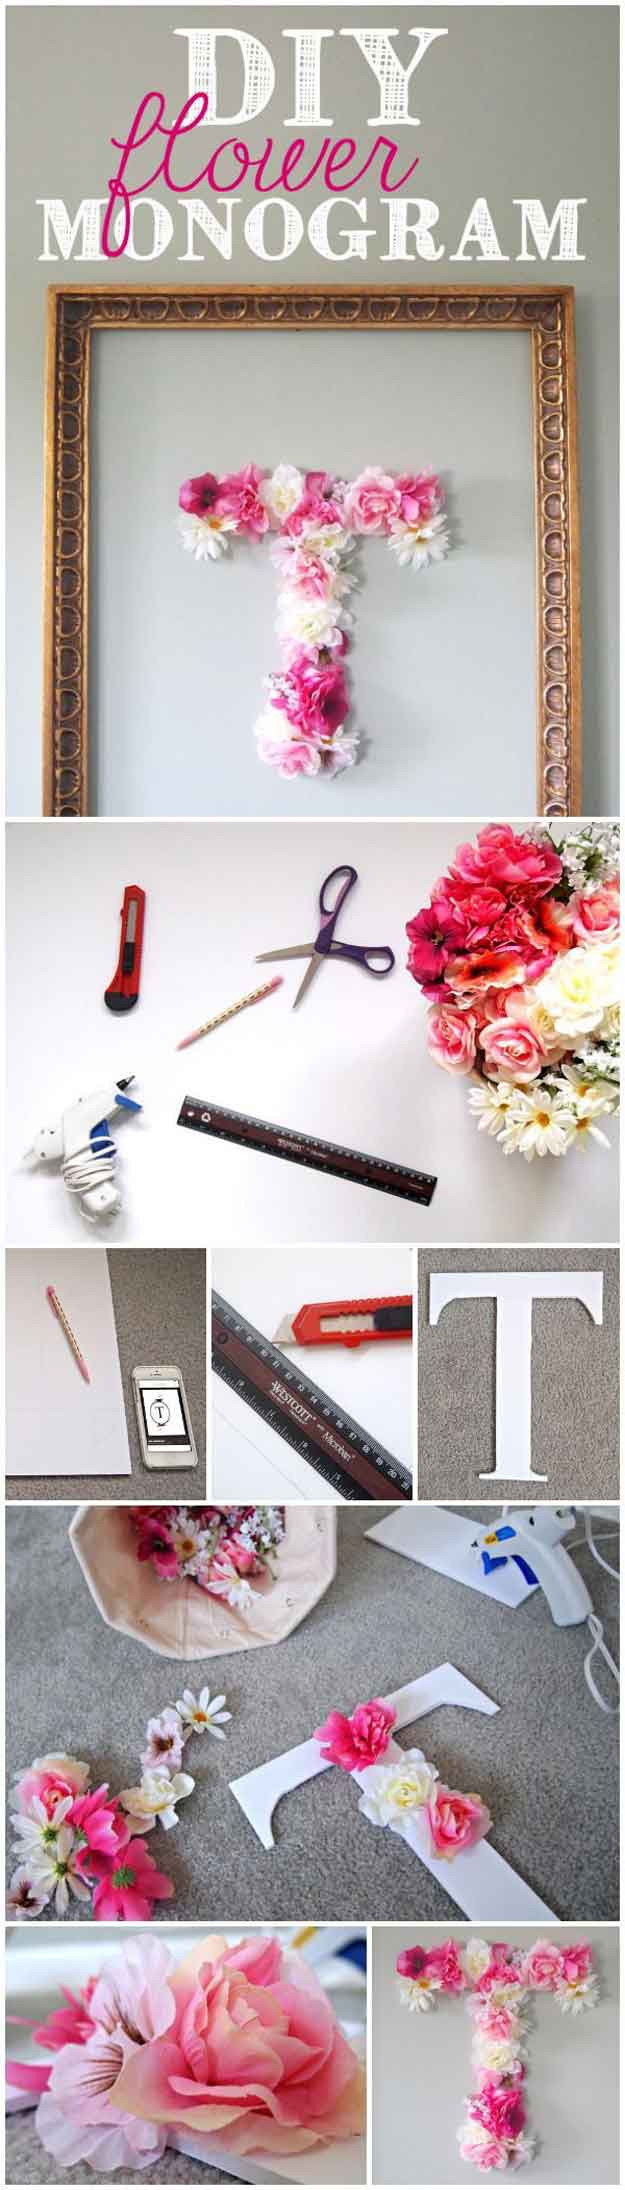 Best ideas about DIY Projects For Your Bedroom . Save or Pin DIY Projects for Teens Bedroom DIY Ready Now.